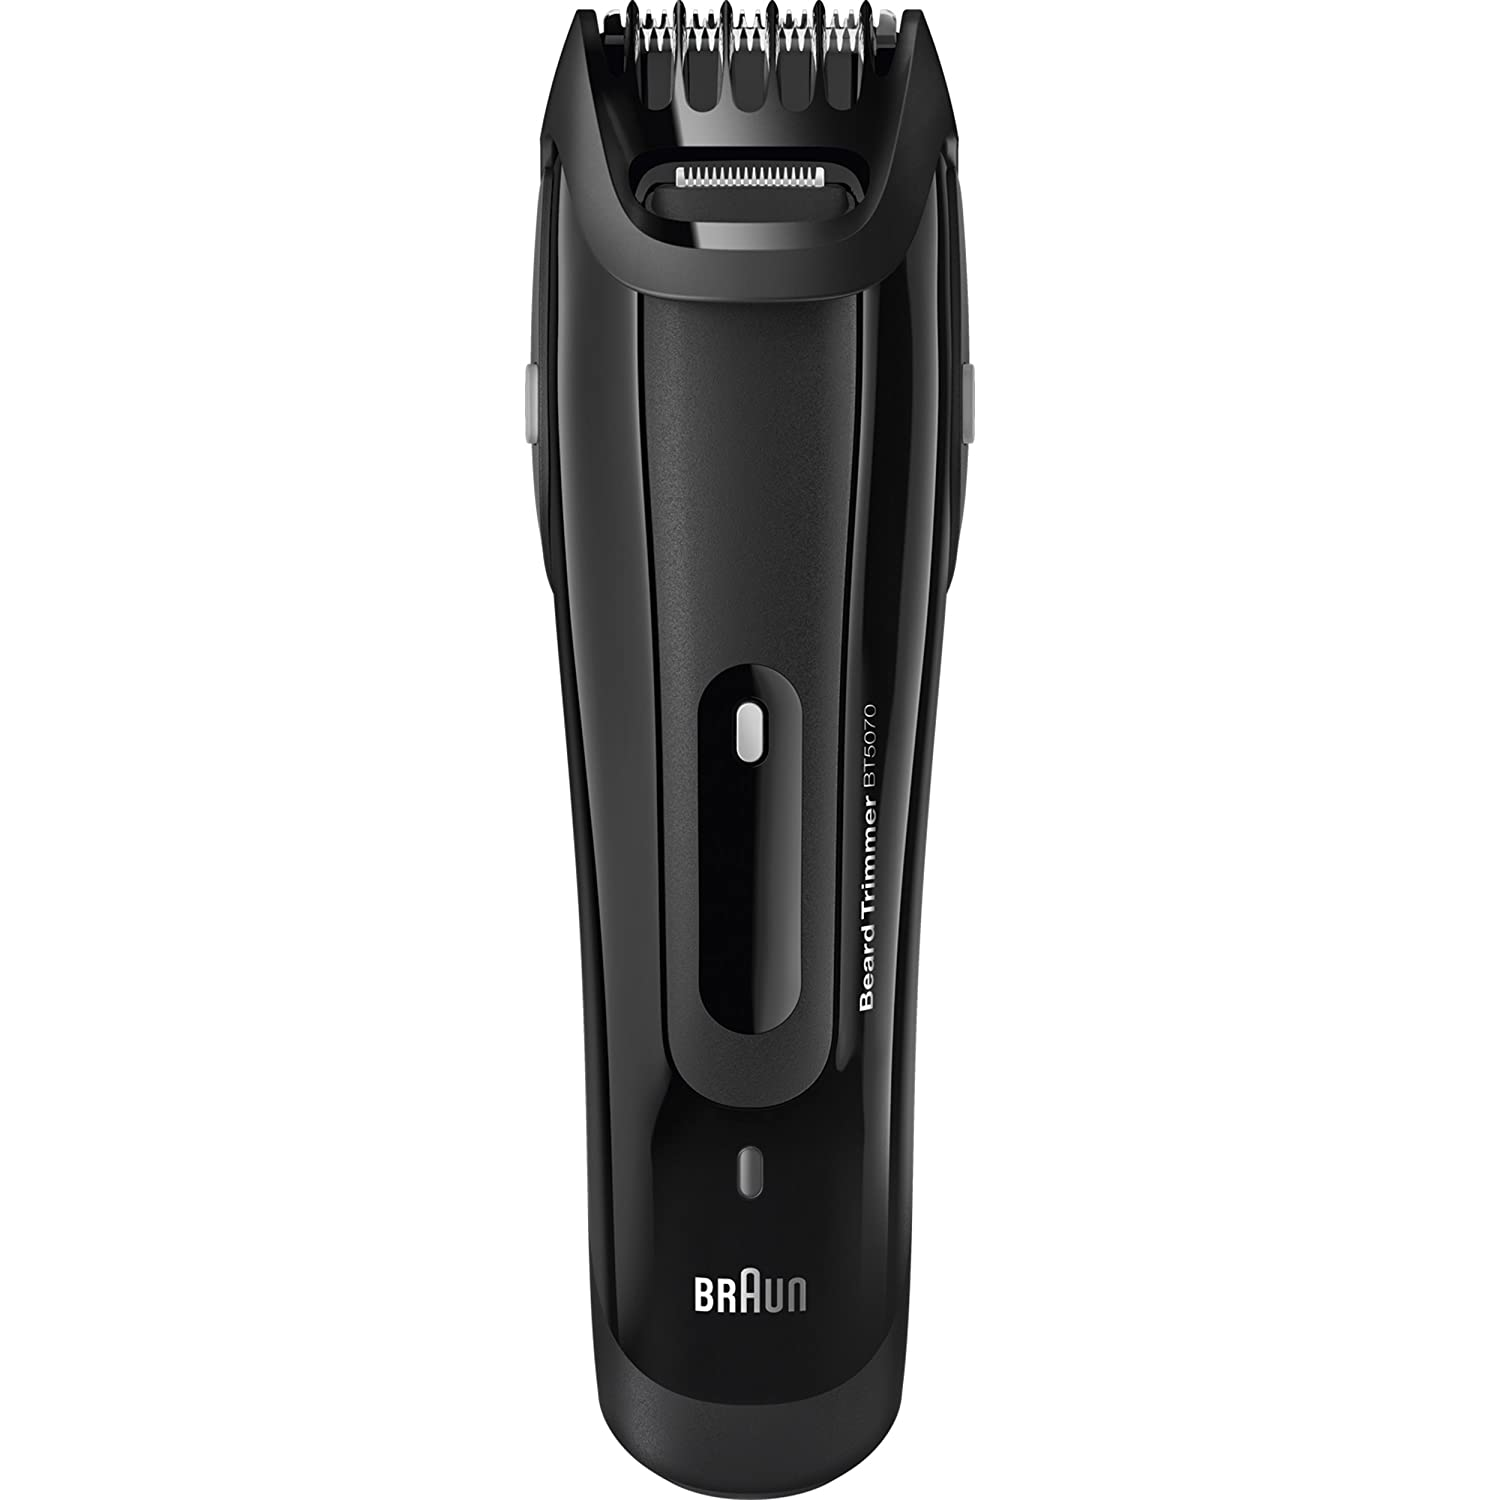 Braun BT5070 Cordless & Rechargeable Men's Beard Trimmer